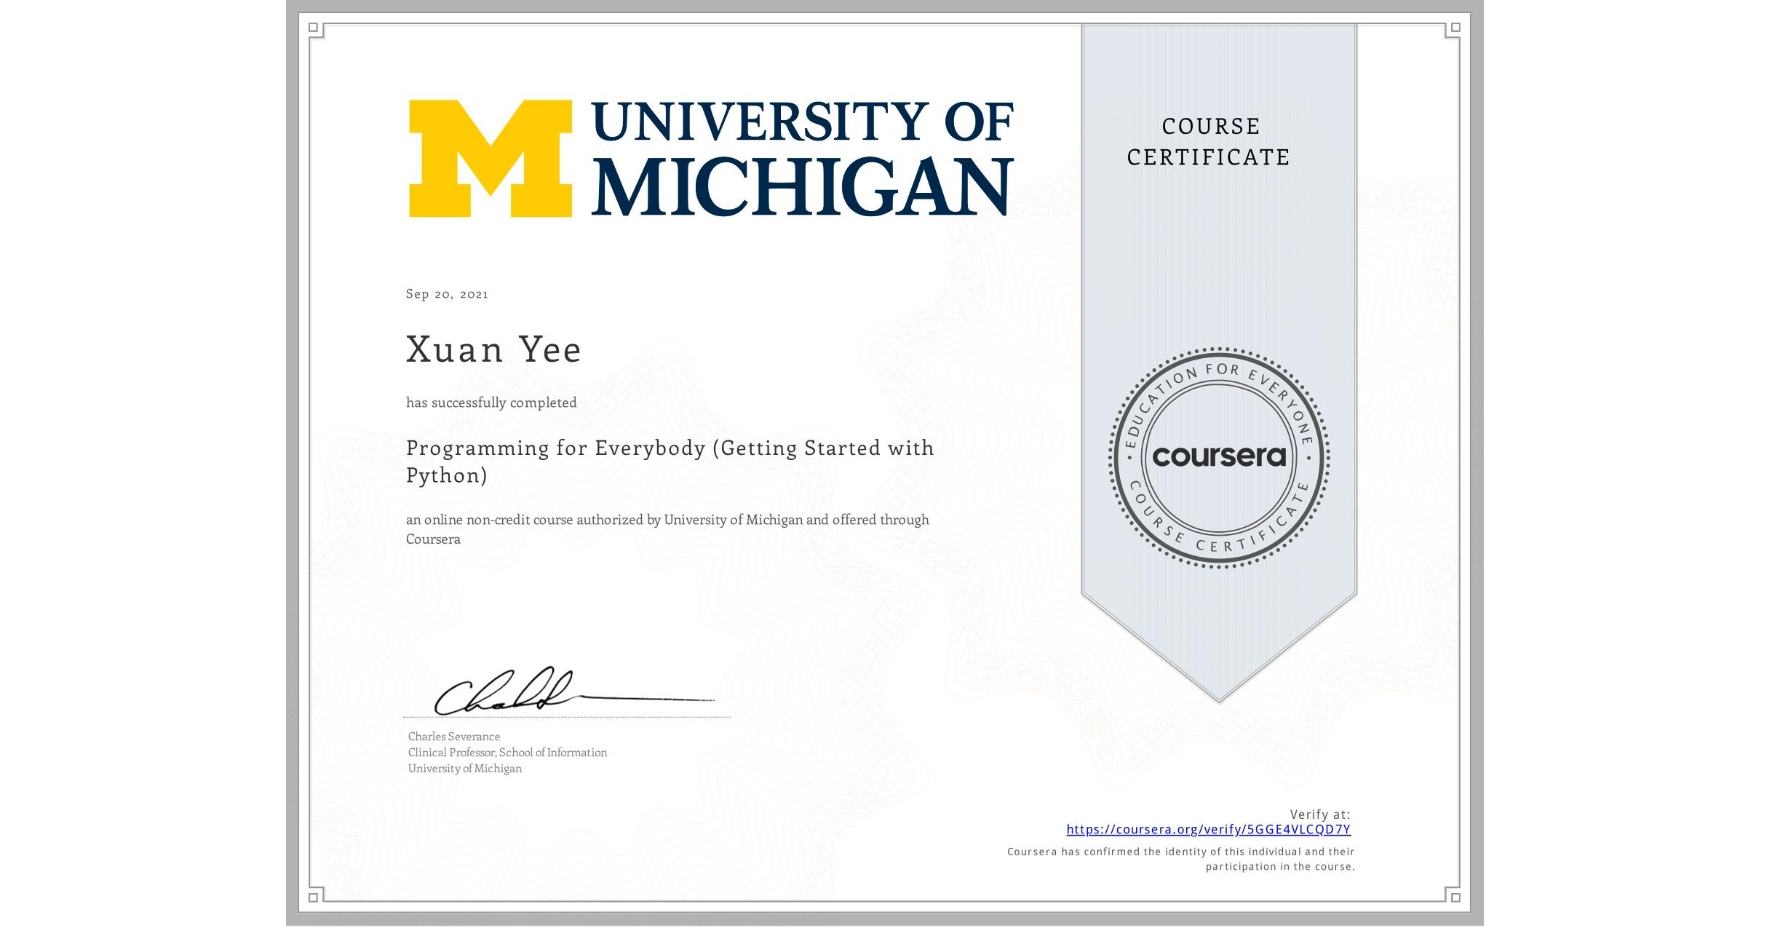 View certificate for Xuan Yee, Programming for Everybody (Getting Started with Python), an online non-credit course authorized by University of Michigan and offered through Coursera